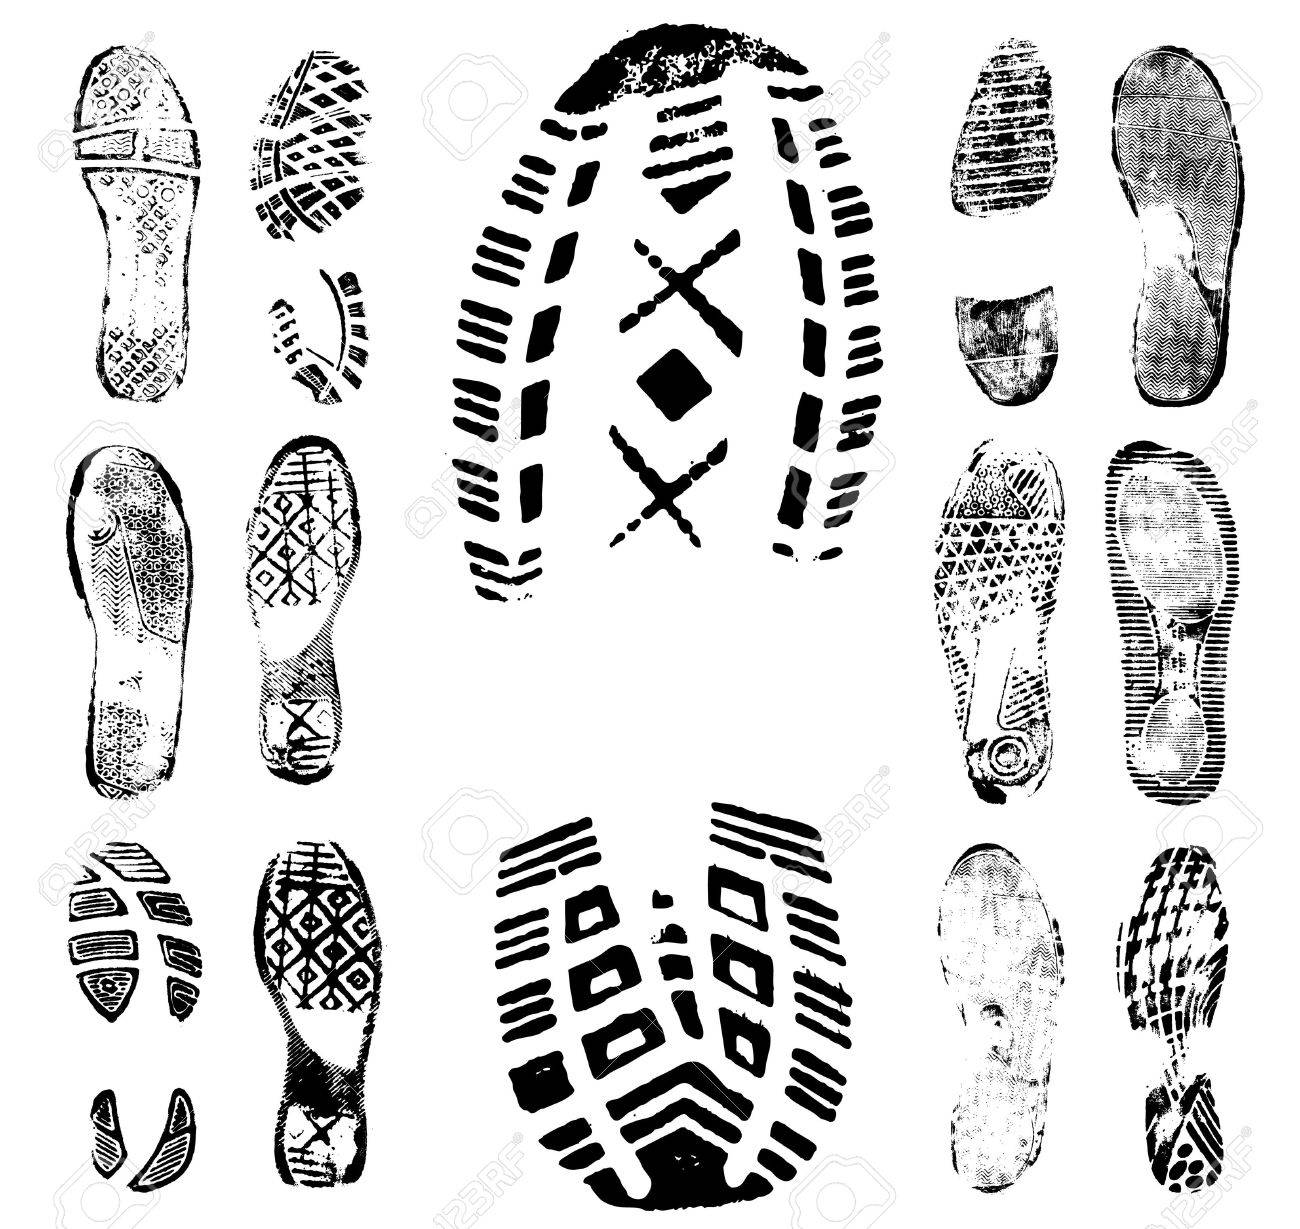 a67f072b77ca Illustration - Vector illustration of various footprint shoeprint traces.  Collection number 1.